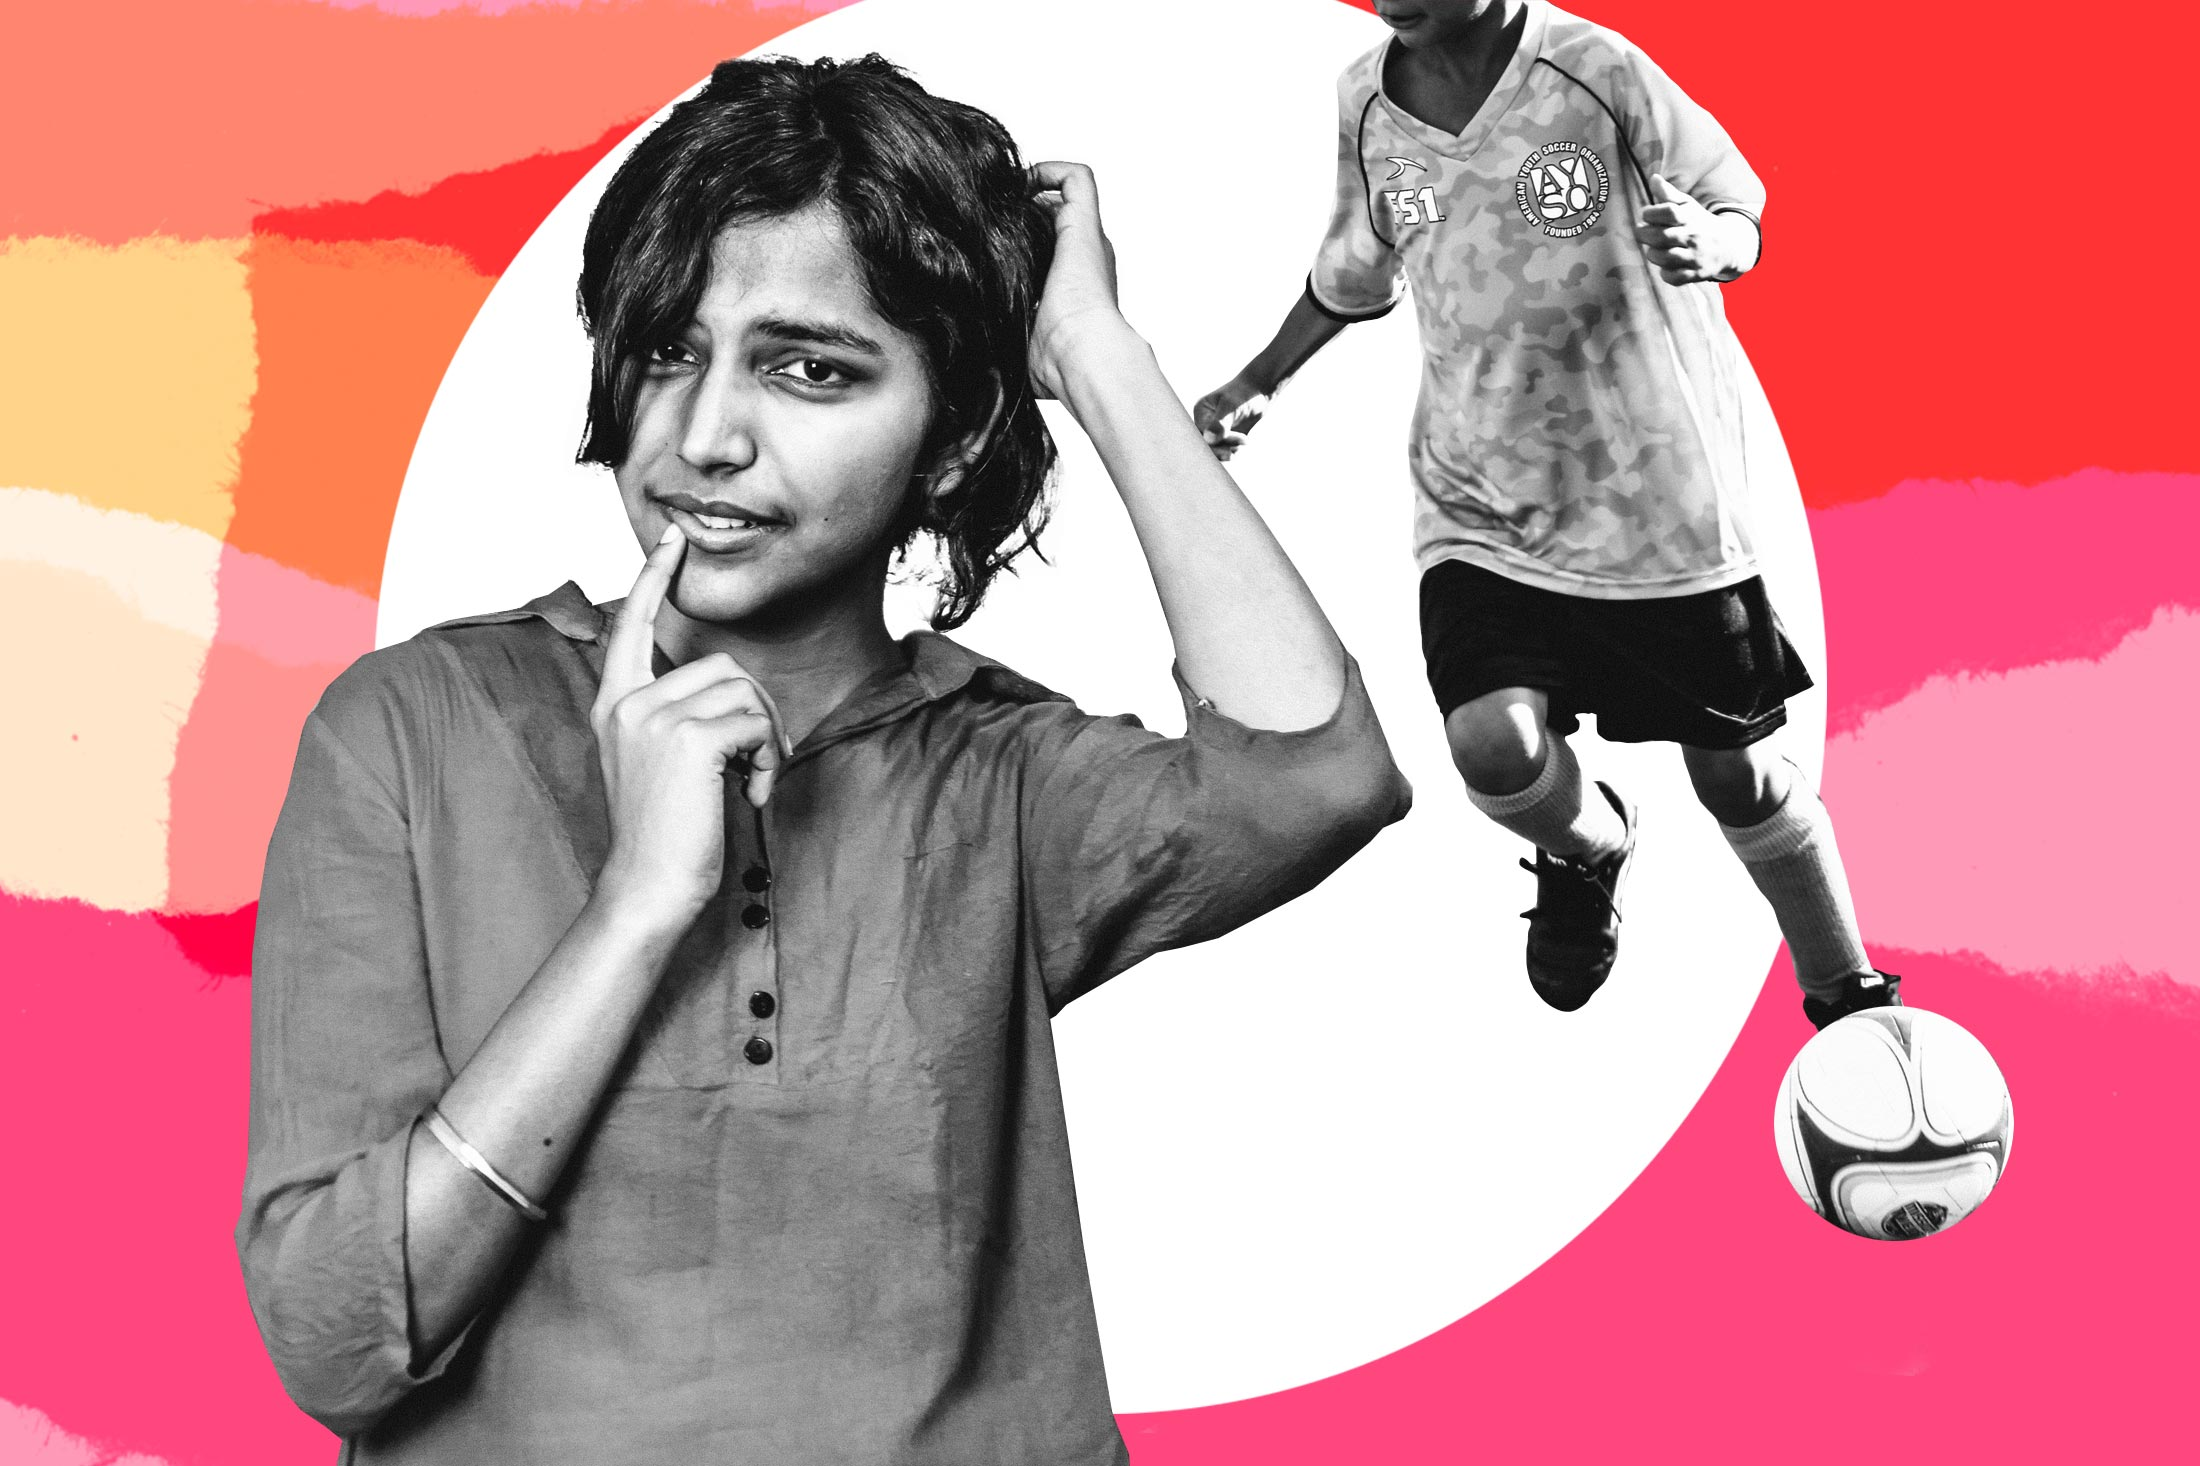 Photo collage of a woman scratching her head while her son plays soccer behind her.